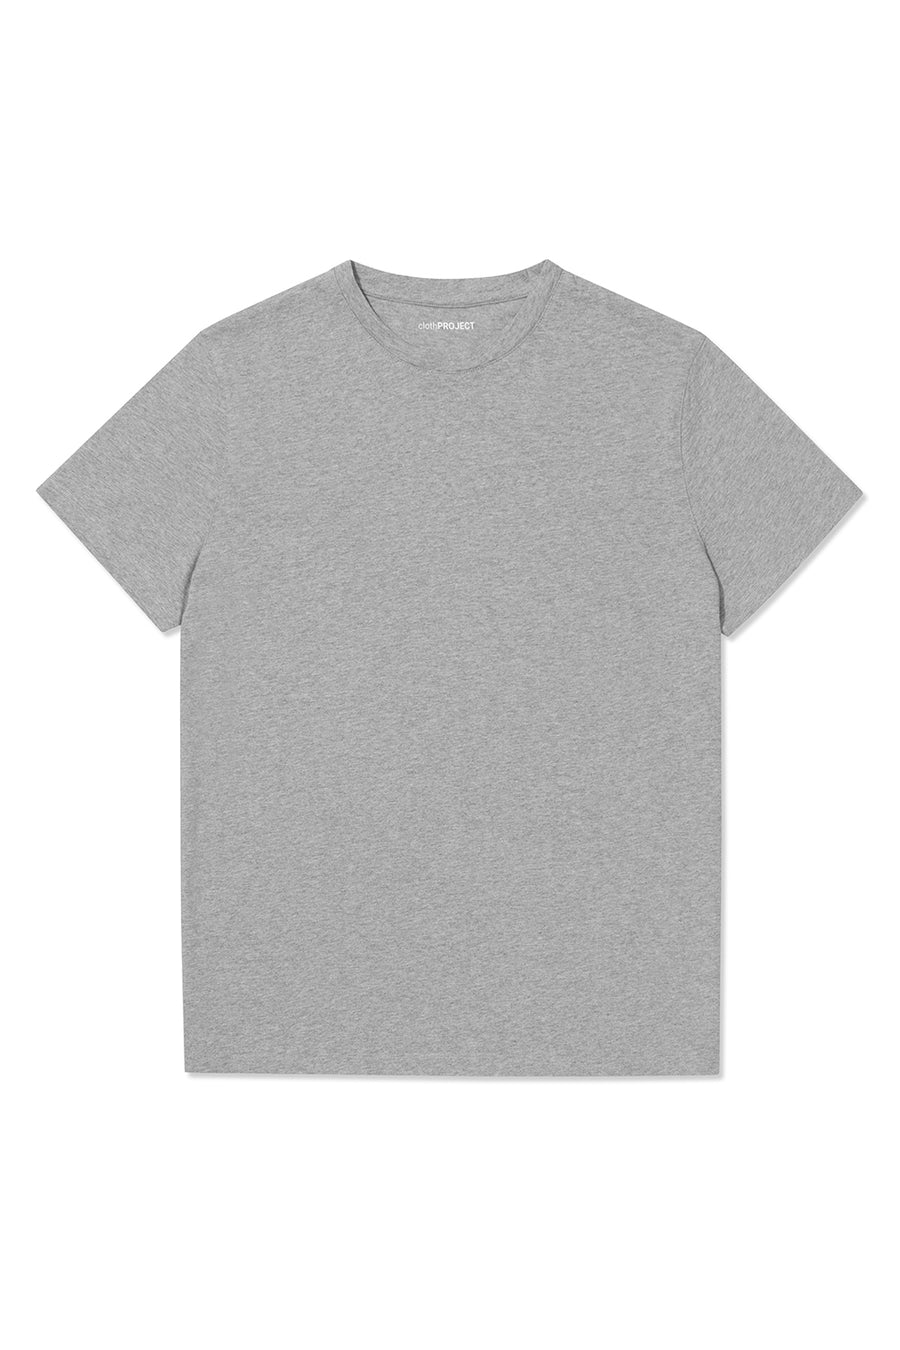 clothPROJECT men's grey ethical sustainable designer 100% cotton t-shirt with free delivery